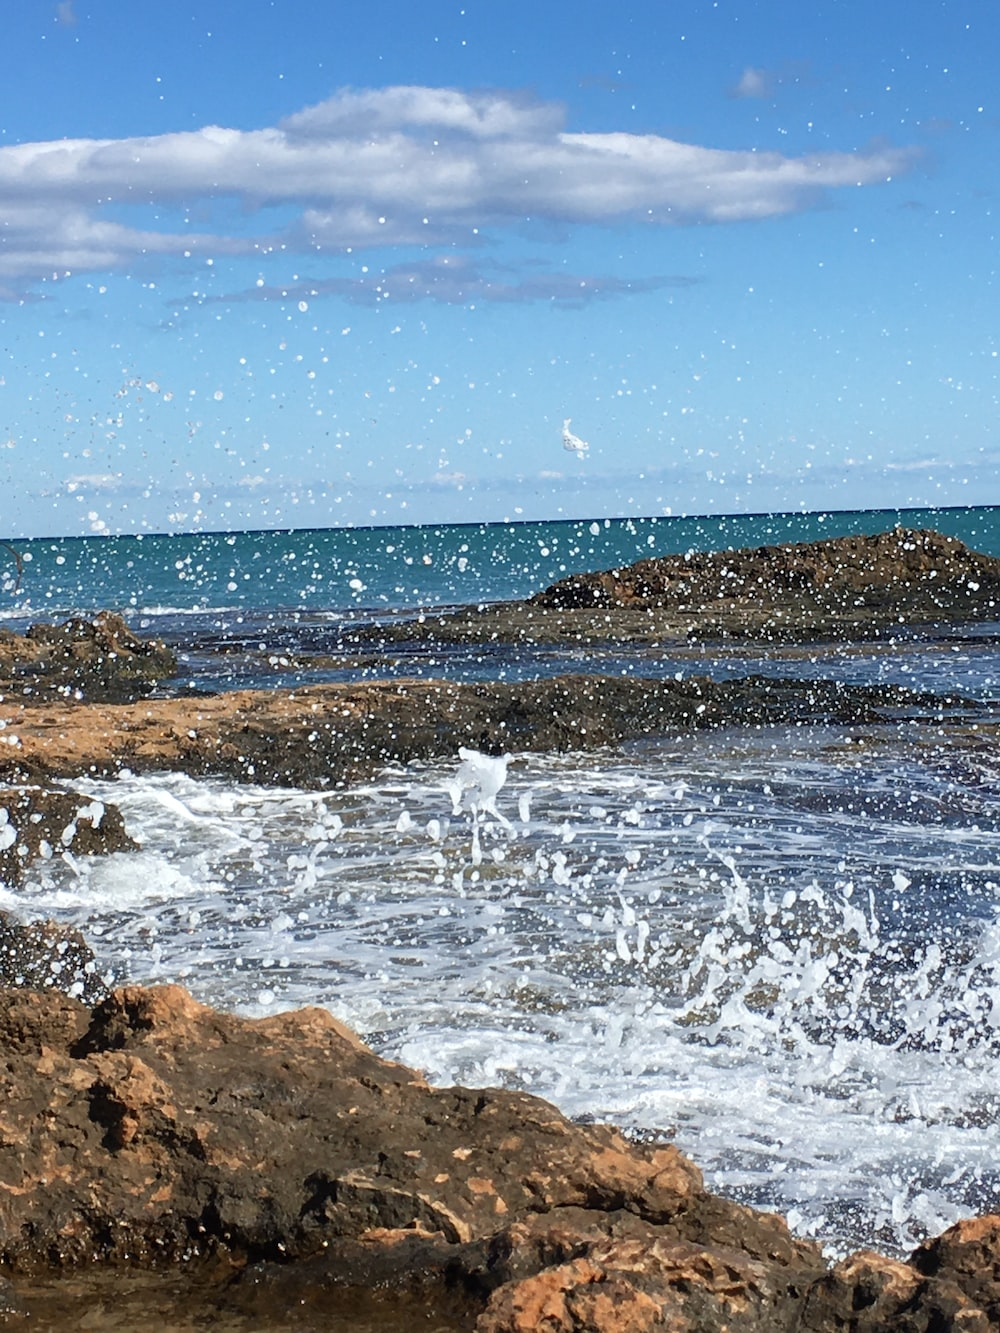 ocean waves crashing on brown rocky shore under blue and white cloudy sky during daytime